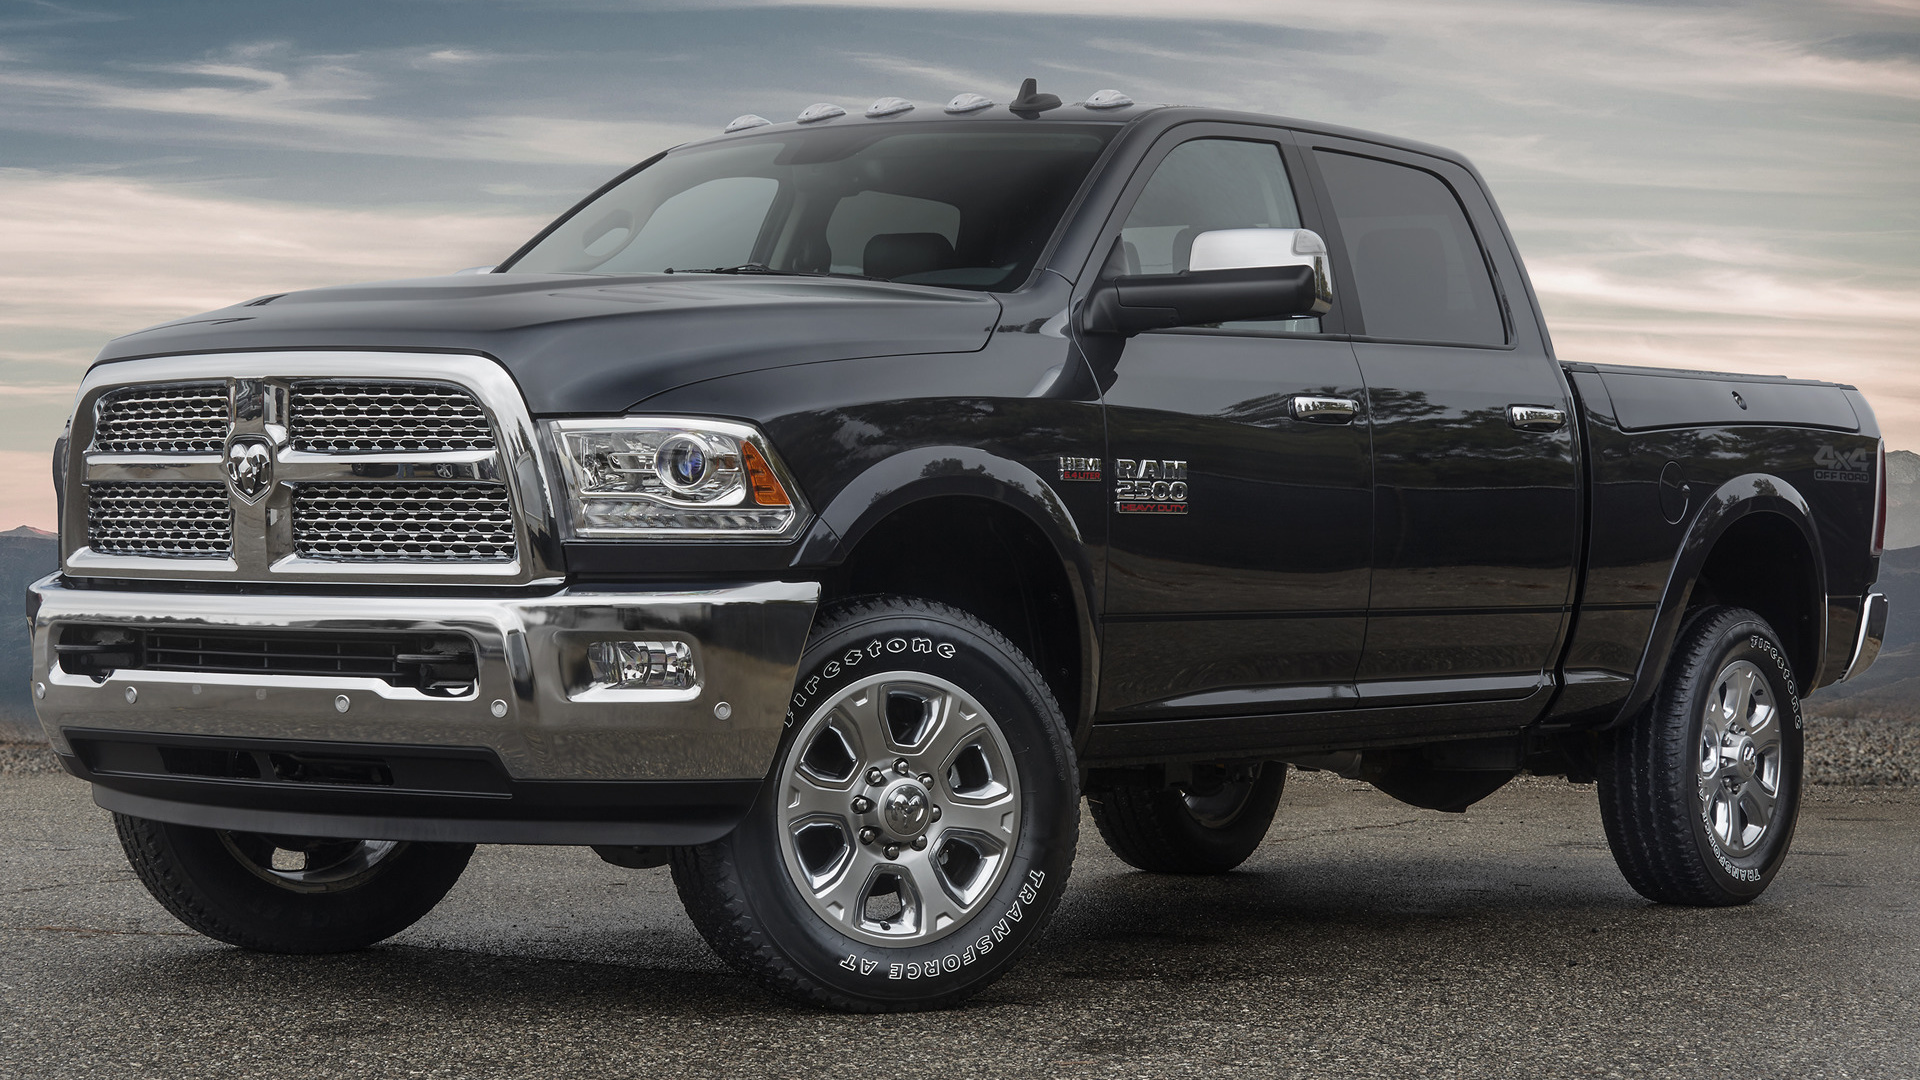 2017 Ram 2500 Laramie Crew Cab Off Road Package